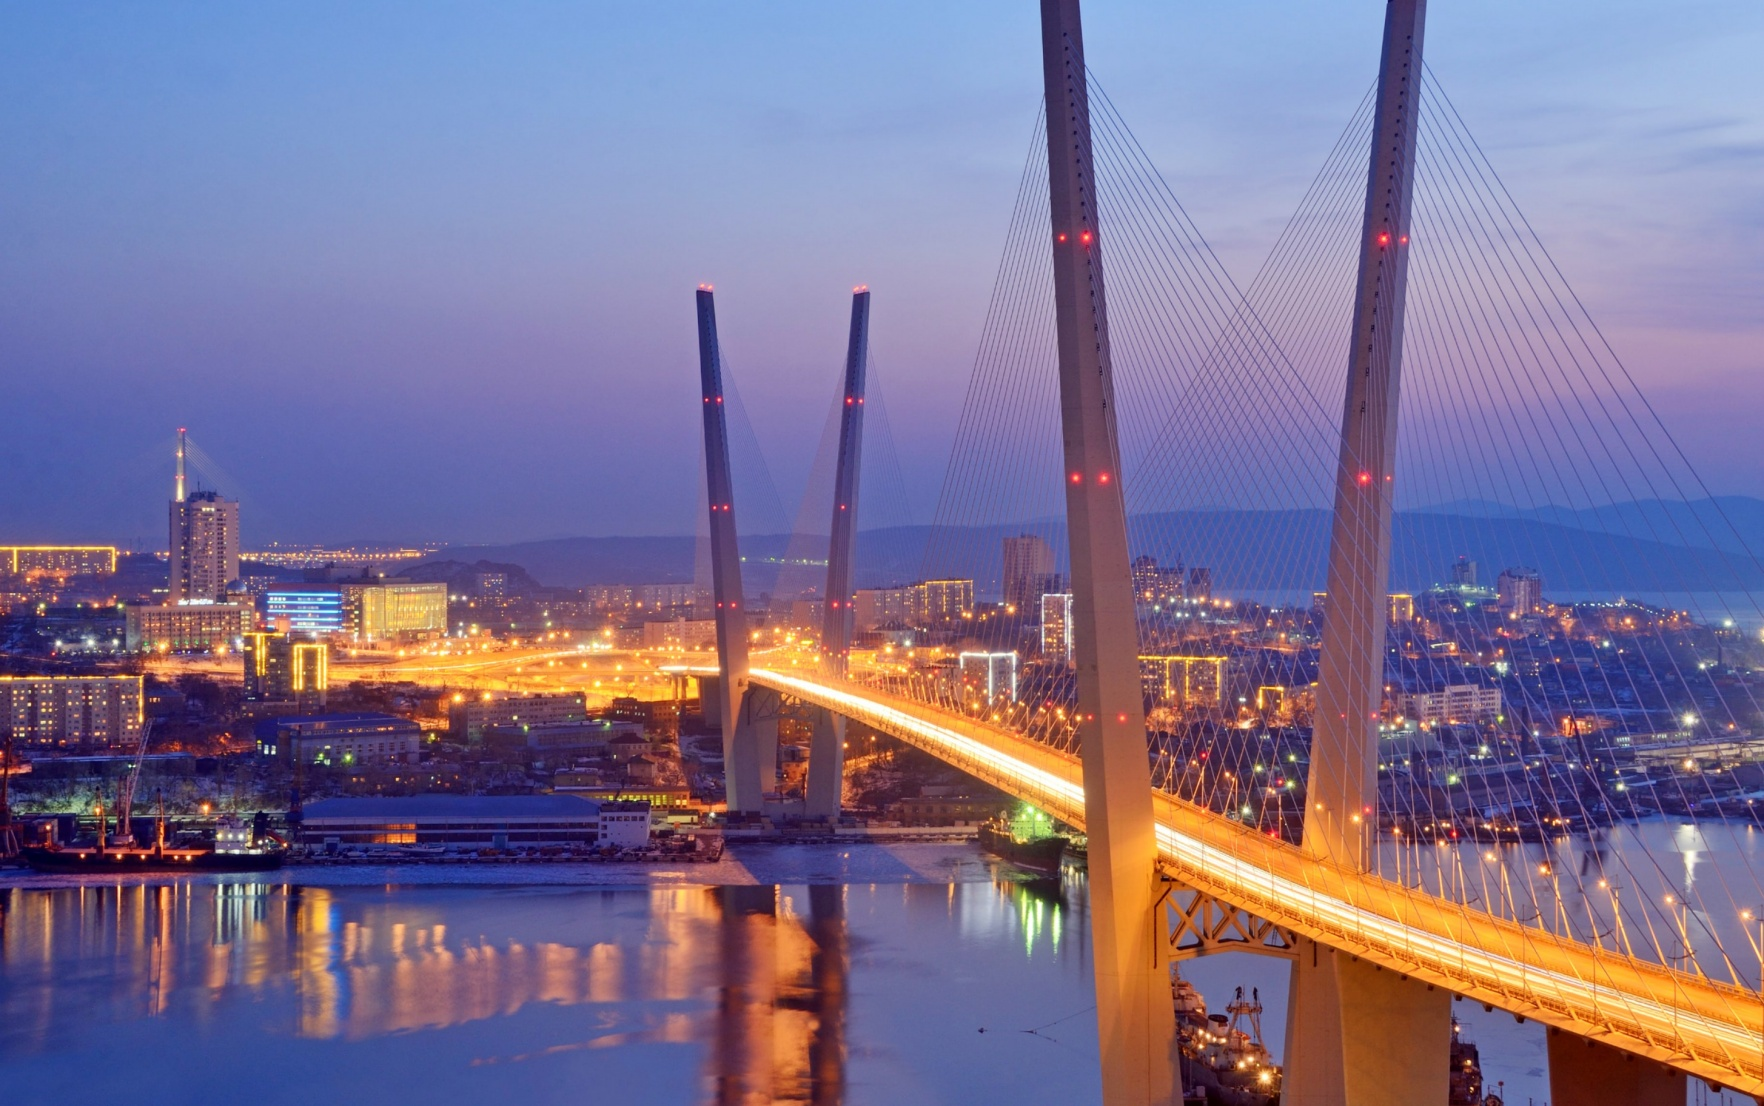 Russky Bridge, Vladivostok